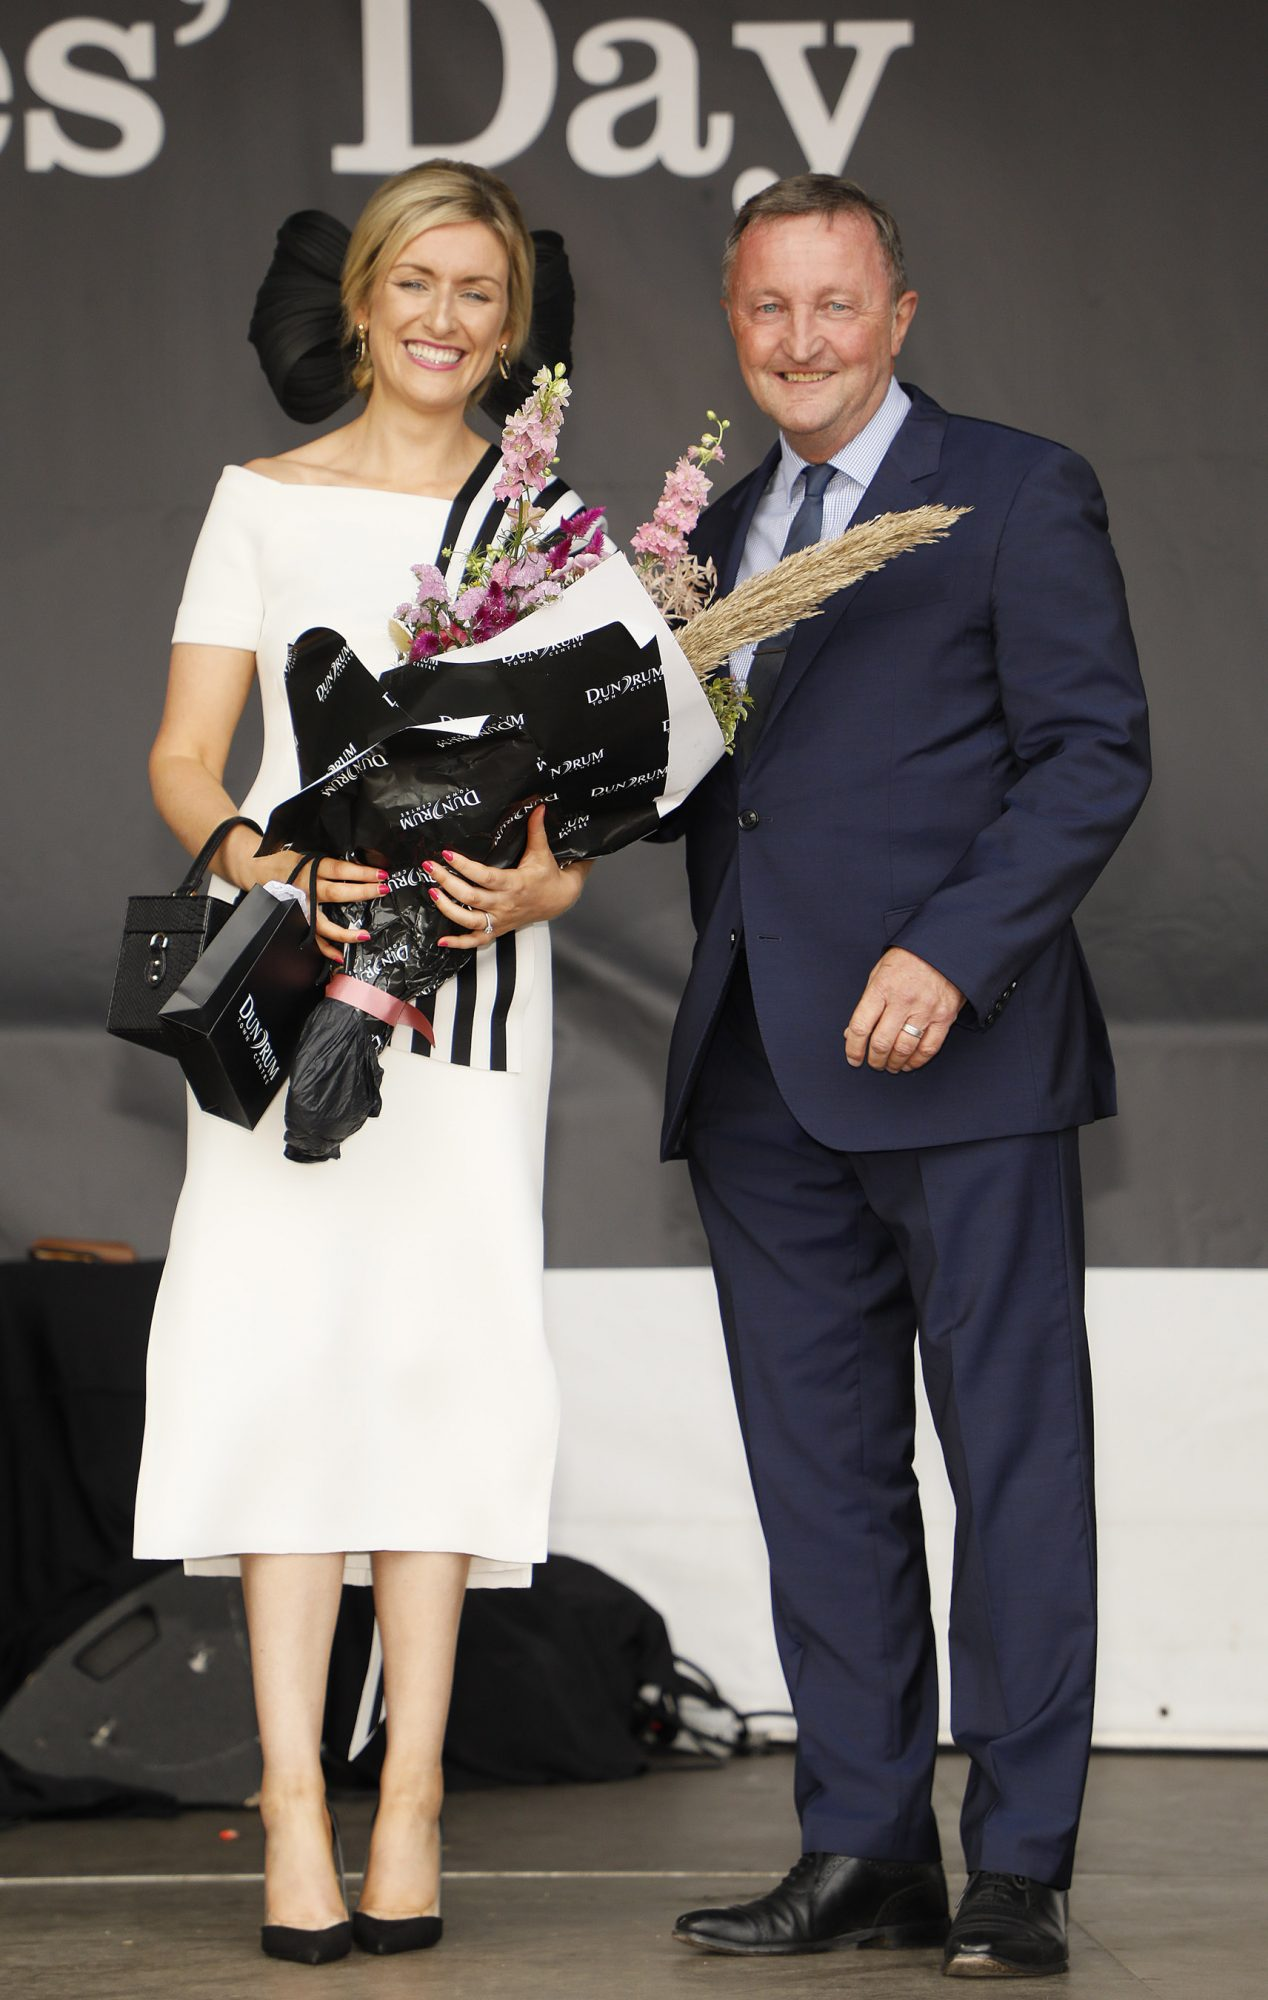 Anne Marie Dunning from Newbridge, Co. Kildare winner of Best Dressed Lady at Dundrum Town Centre Ladies' Day with Don Nugent at the Dublin Horse Show in the RDS, who walked away with a €10,000 gift card for Dundrum Town Centre. Photo: Kieran Harnett